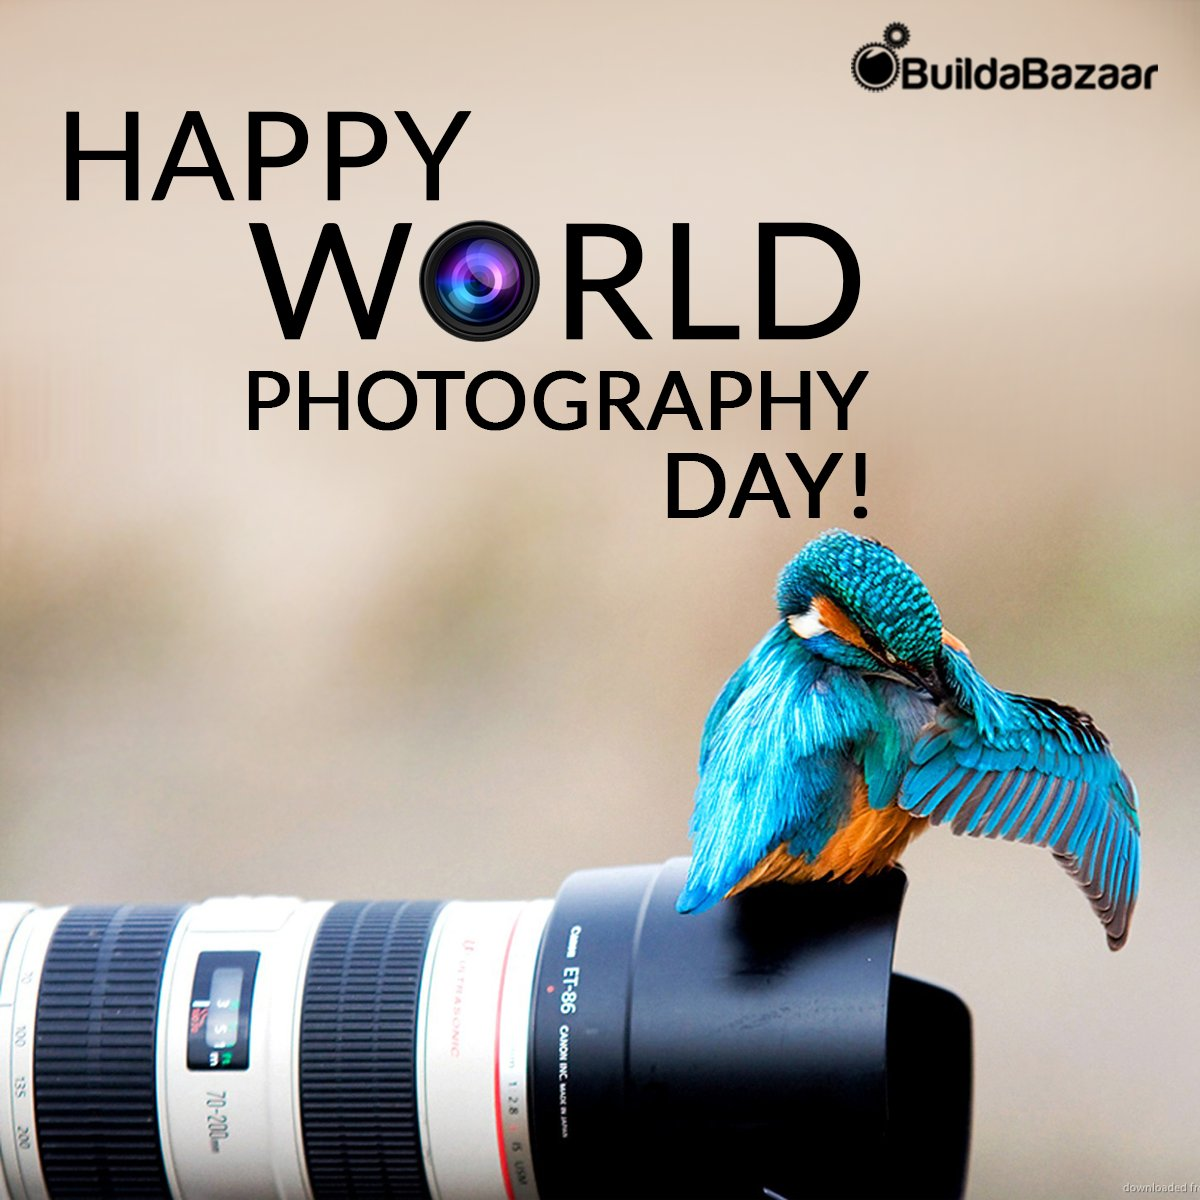 Buildabazaar On Twitter If You Are Truly Successful In Capturing The Pulse Of Life Then You Can Speak Of A Good Photograph William Klein Happy World Photography Day From Https T Co Yets87pli6 Worldphotographyday